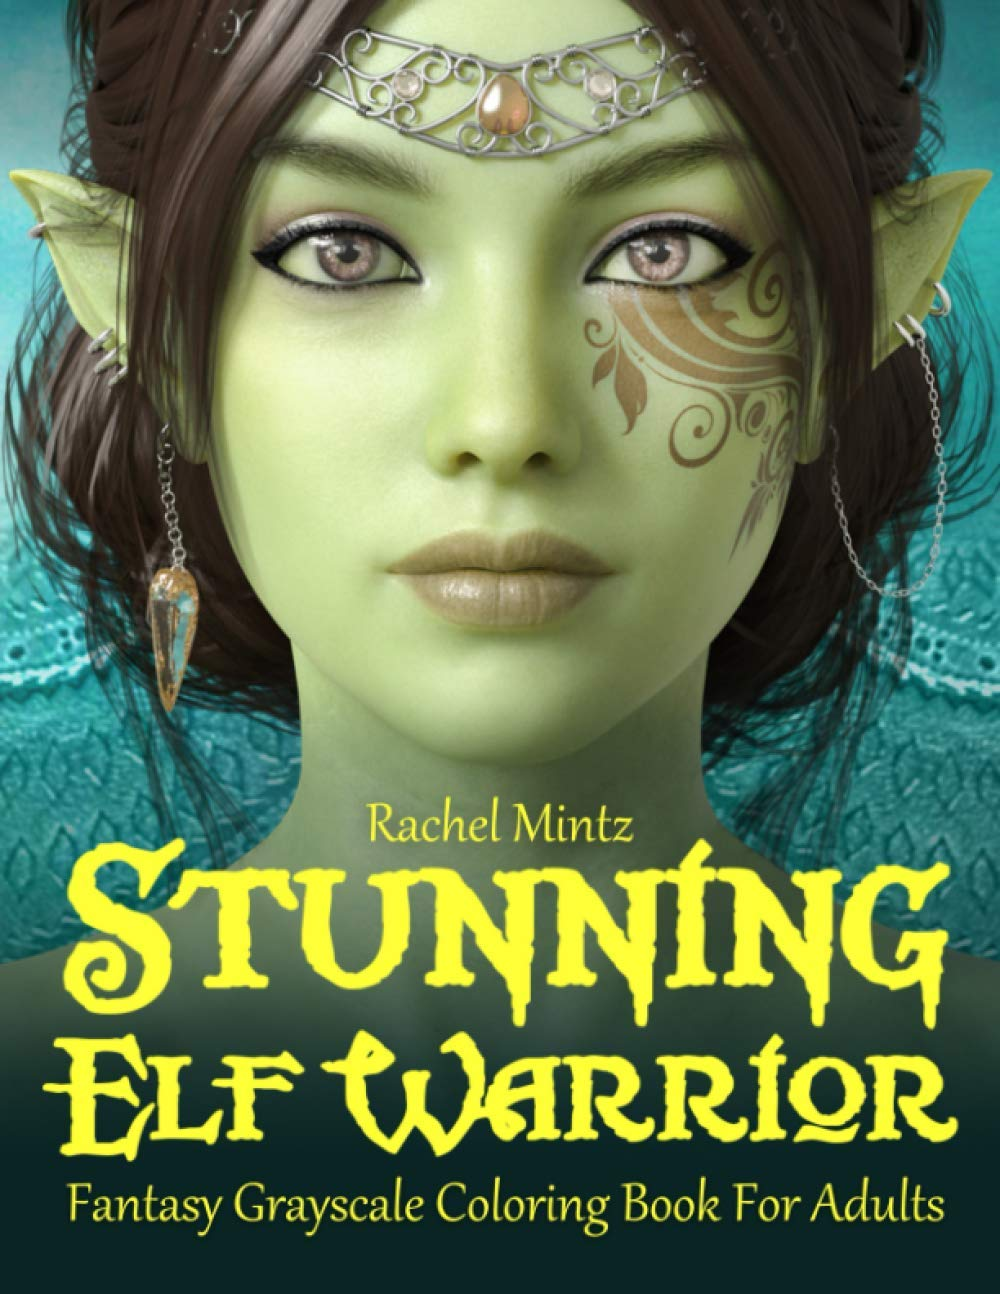 Stunning Elf Warrior Fantasy Grayscale Coloring Book For Adults: 30 Gorgeous Female Elves Portraits pdf epub